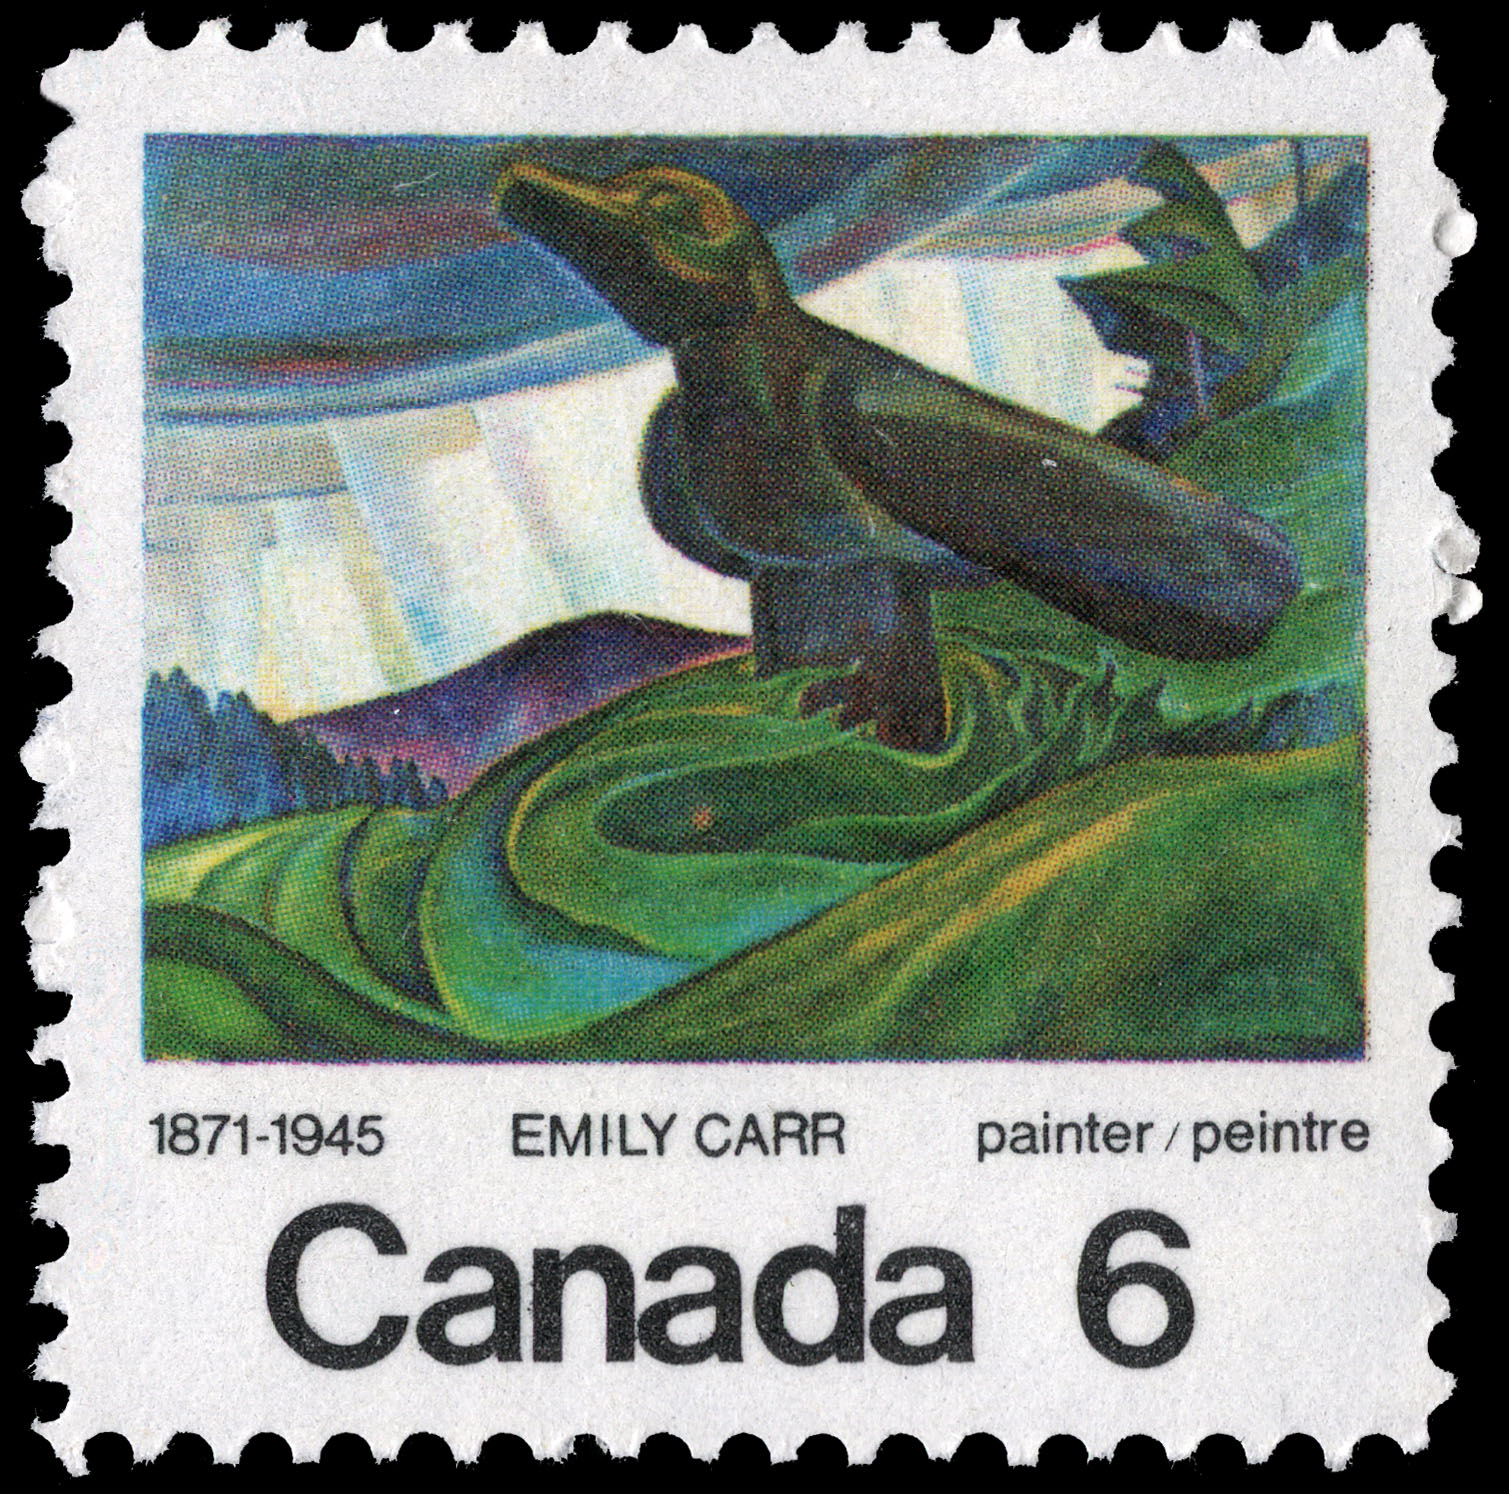 Emily Carr, painter, 1871-1945 Canada Postage Stamp